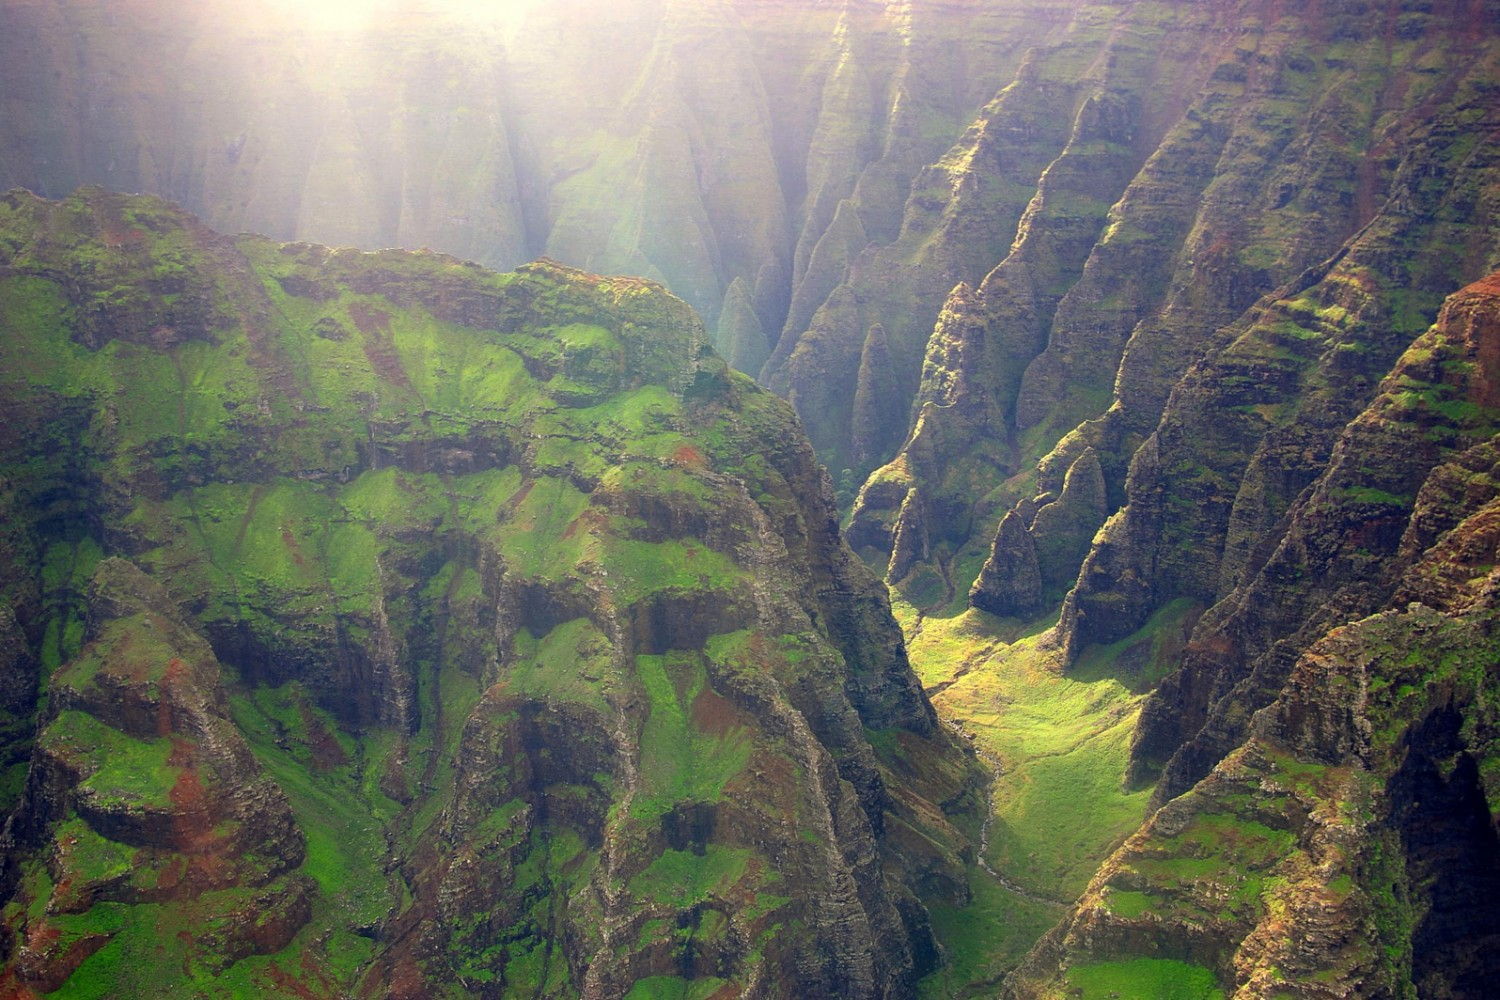 Photos from 3 Gorgeous Jurassic World Filming Locations